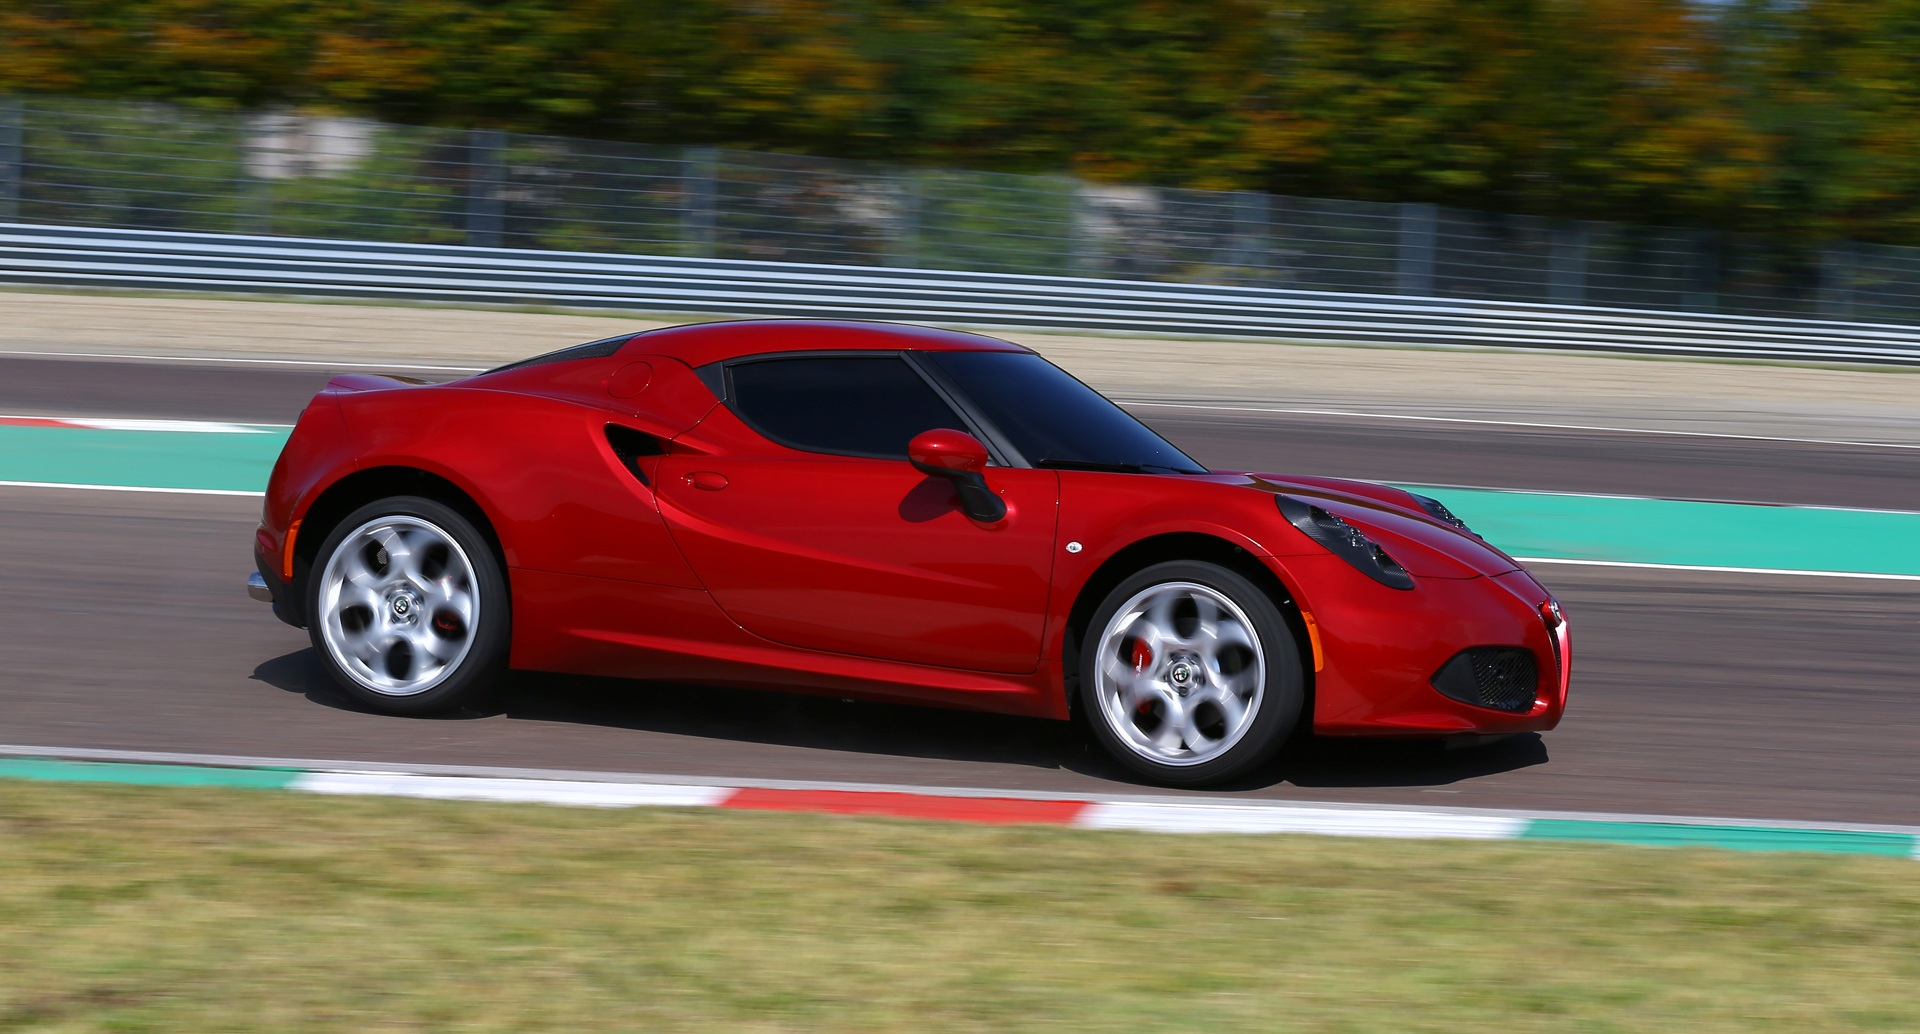 2014 Alfa Romeo 4c Circuit Test (Photo 1 of 25)